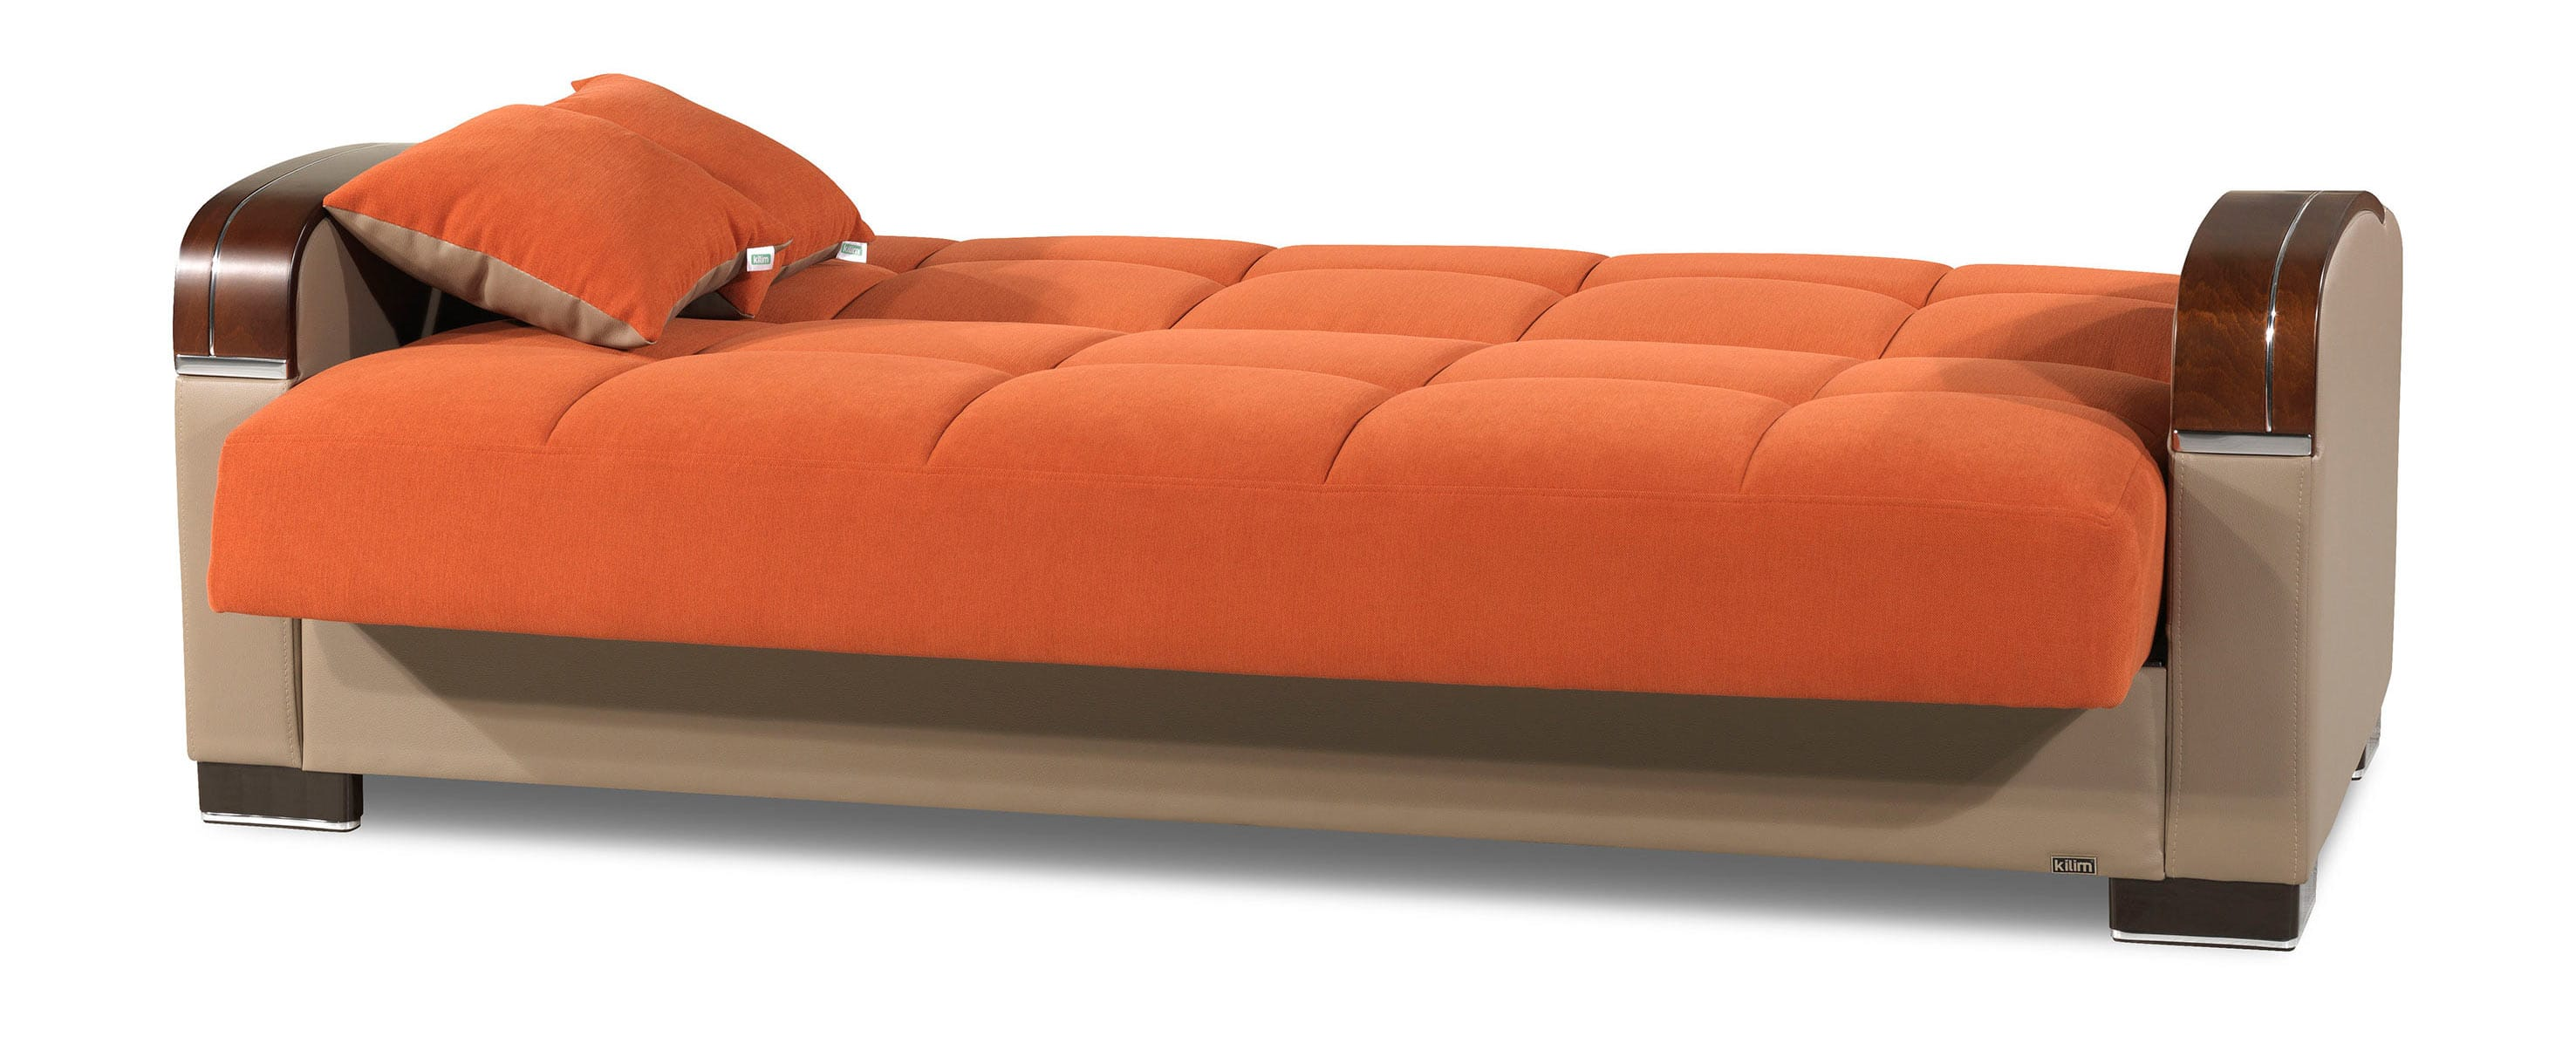 orange sofa bed duck egg blue cushions divan deluxe signature by